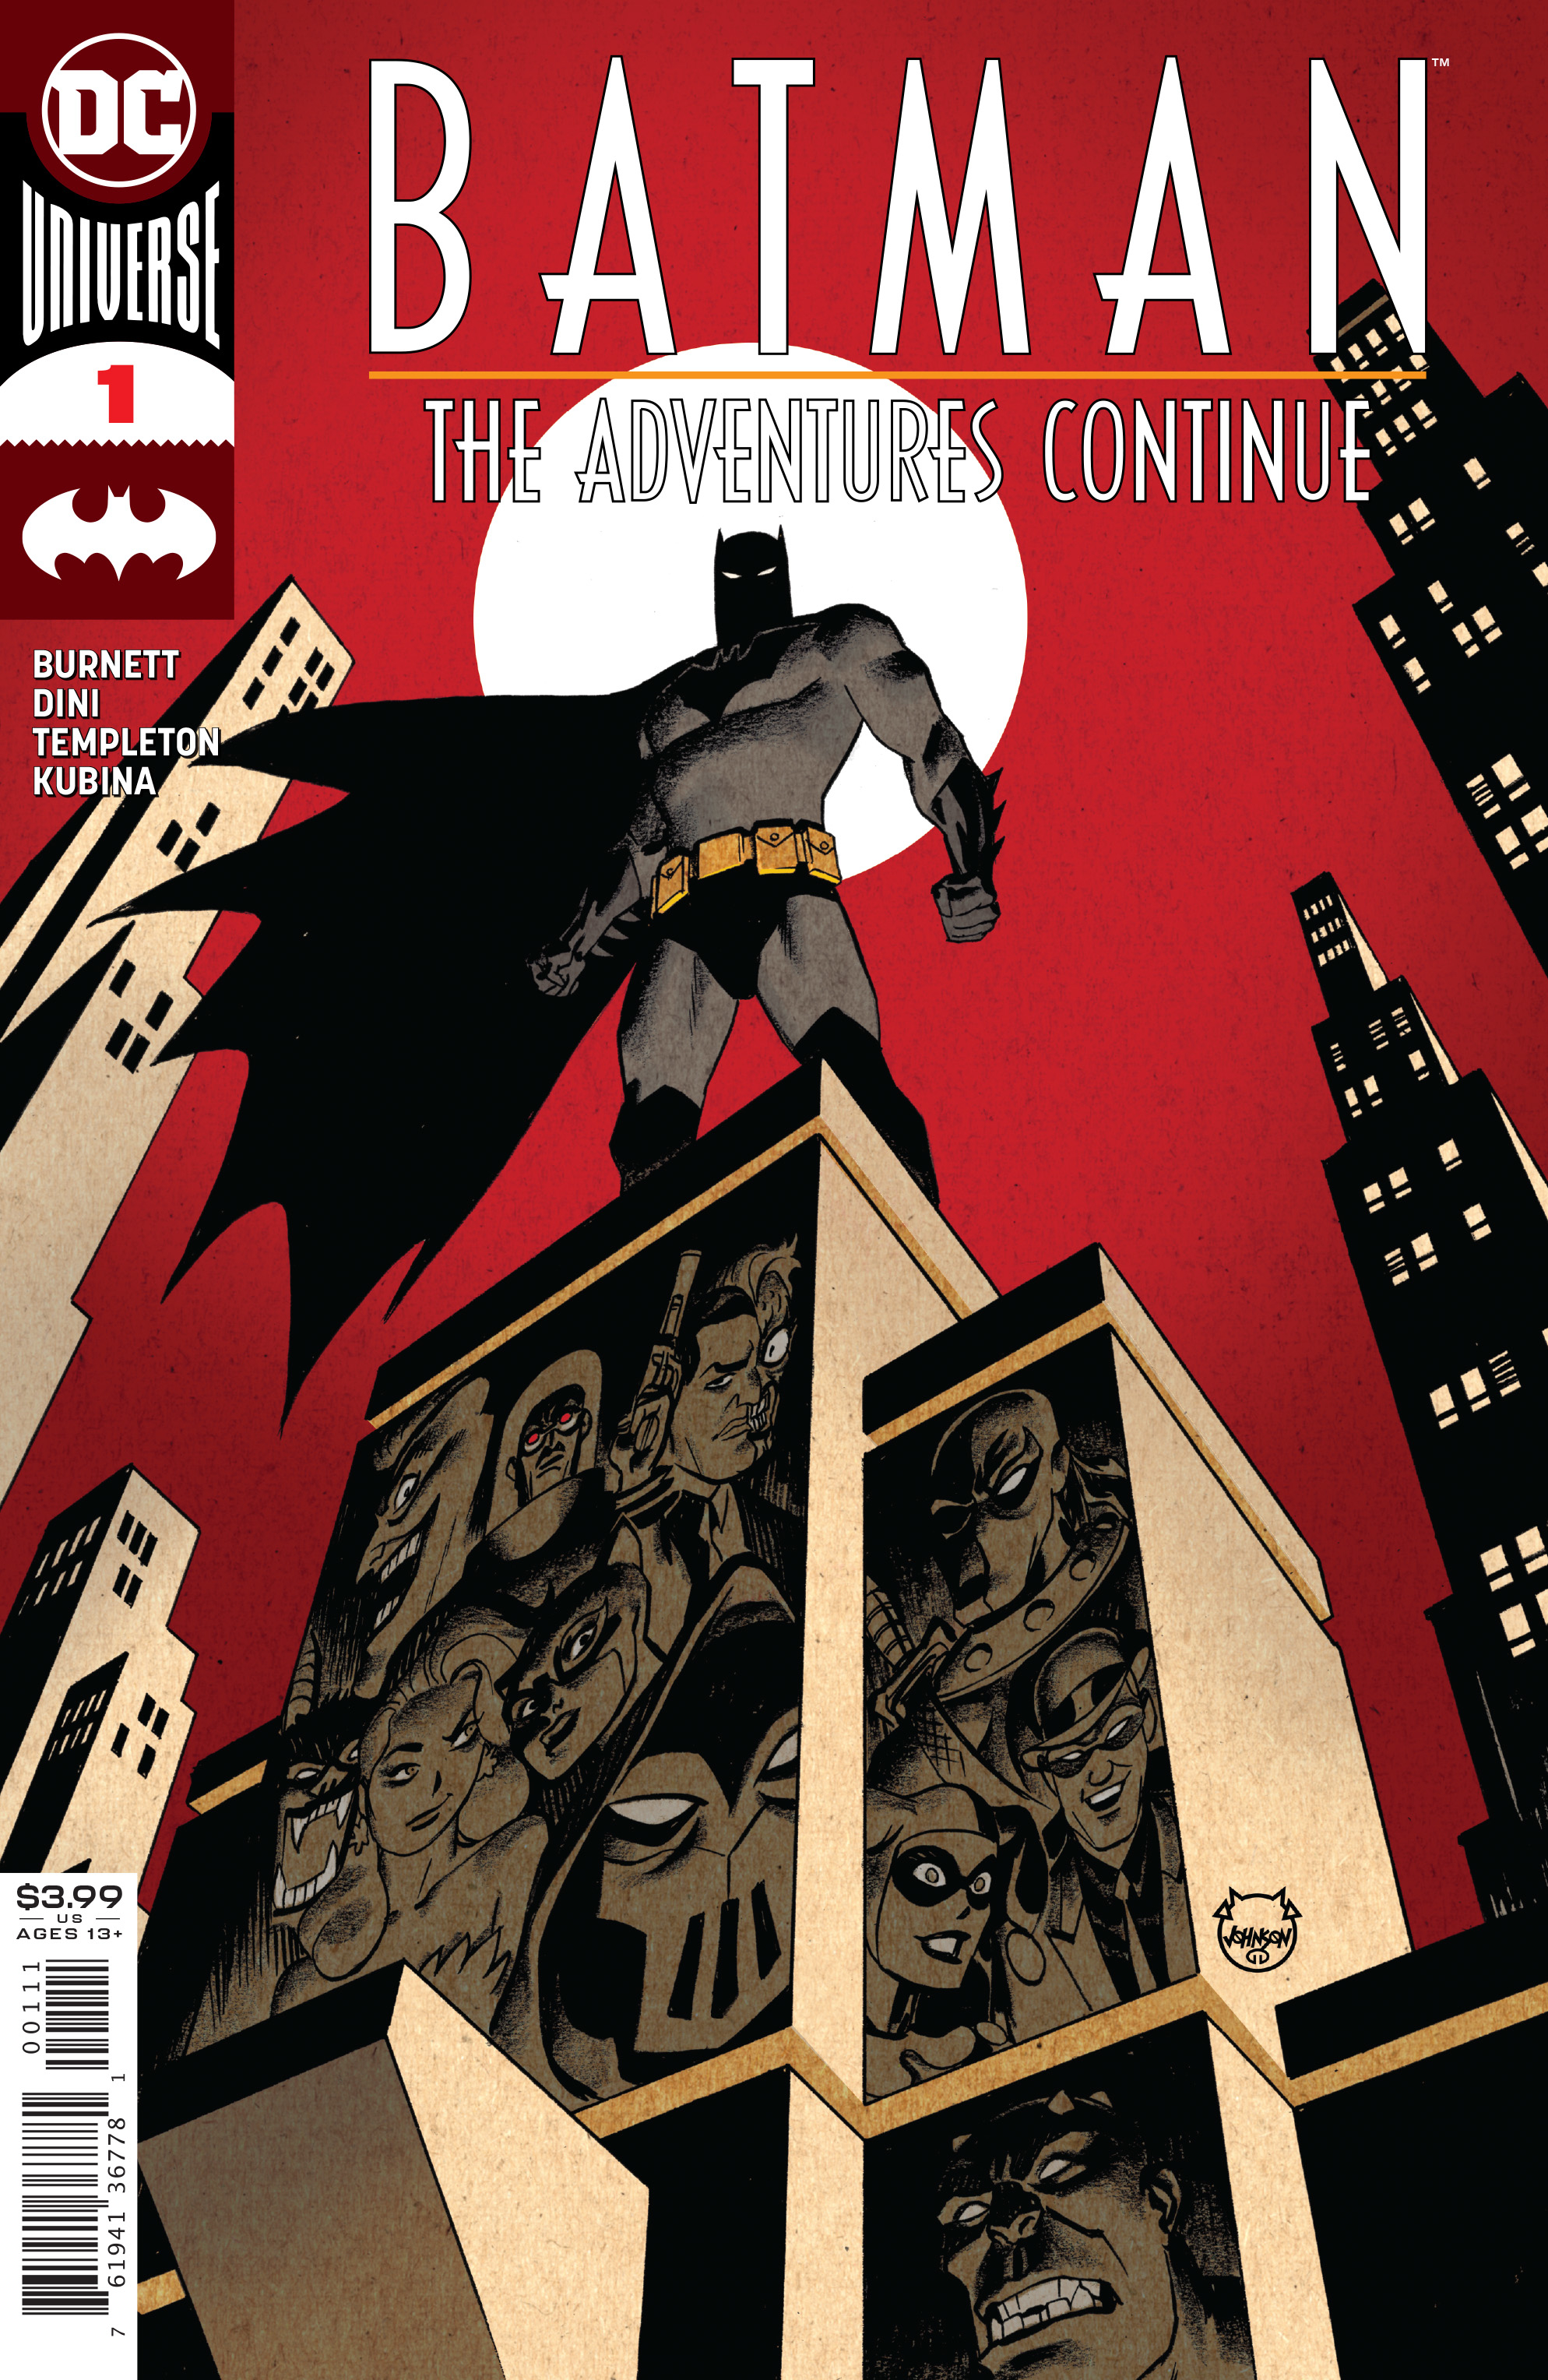 BATMAN THE ADVENTURES CONTINUE #1 (OF 6)